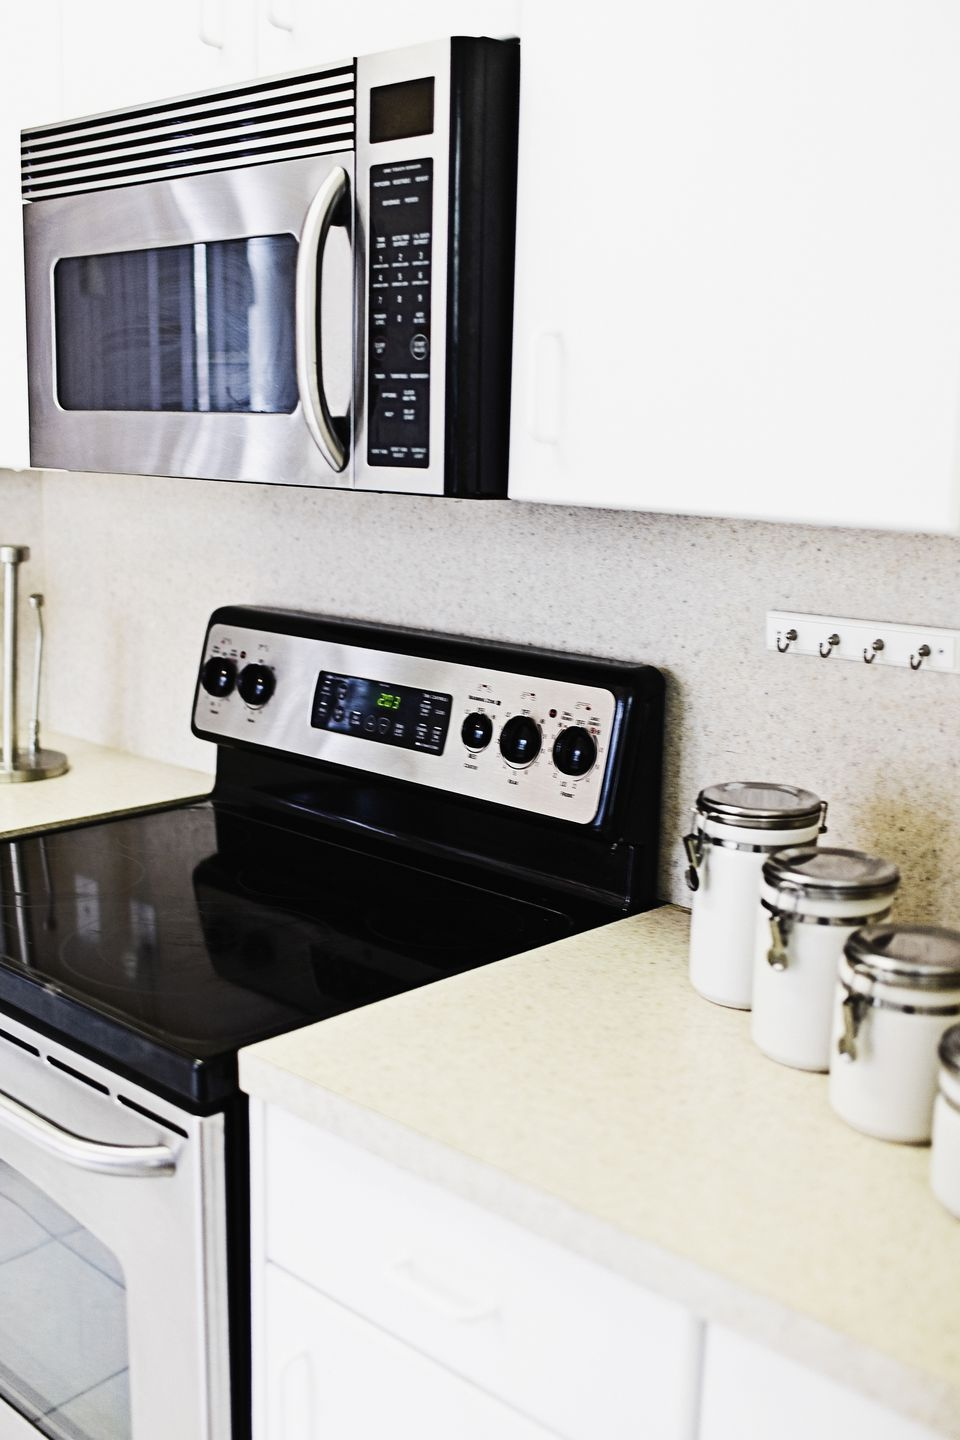 How To Install An Over The Range Microwave Oven